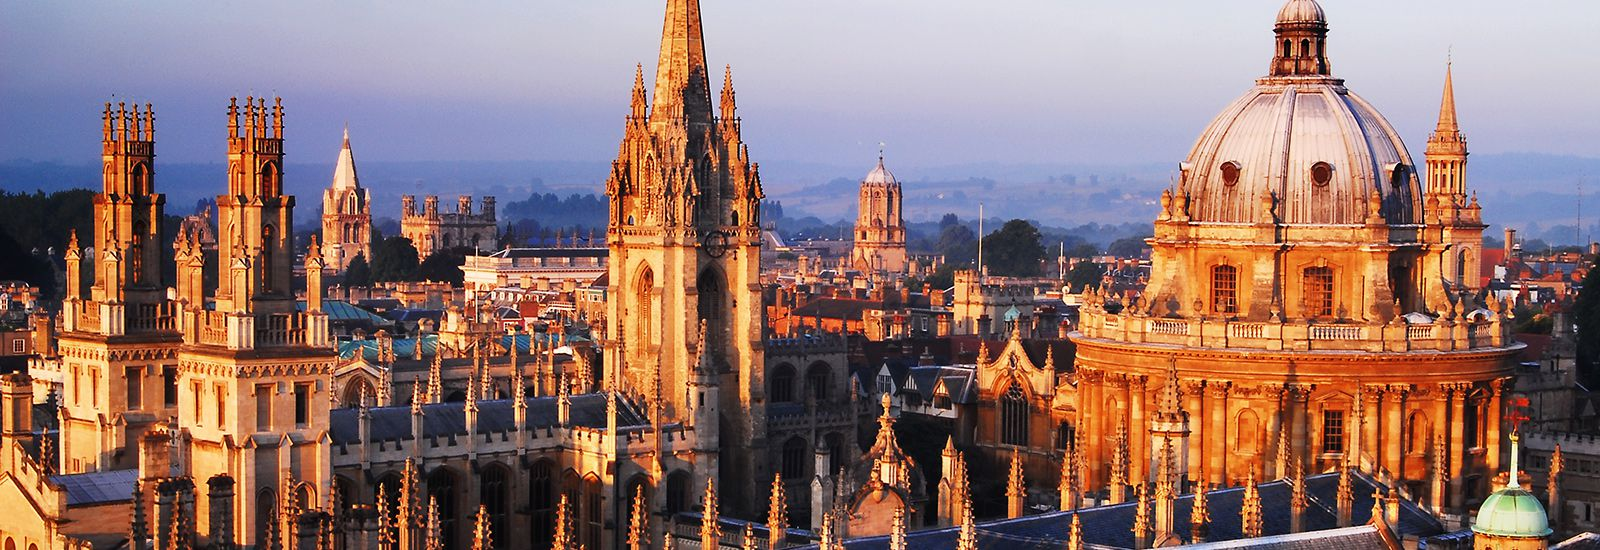 Hundreds of leading British and Israeli scientists meet at Oxford University